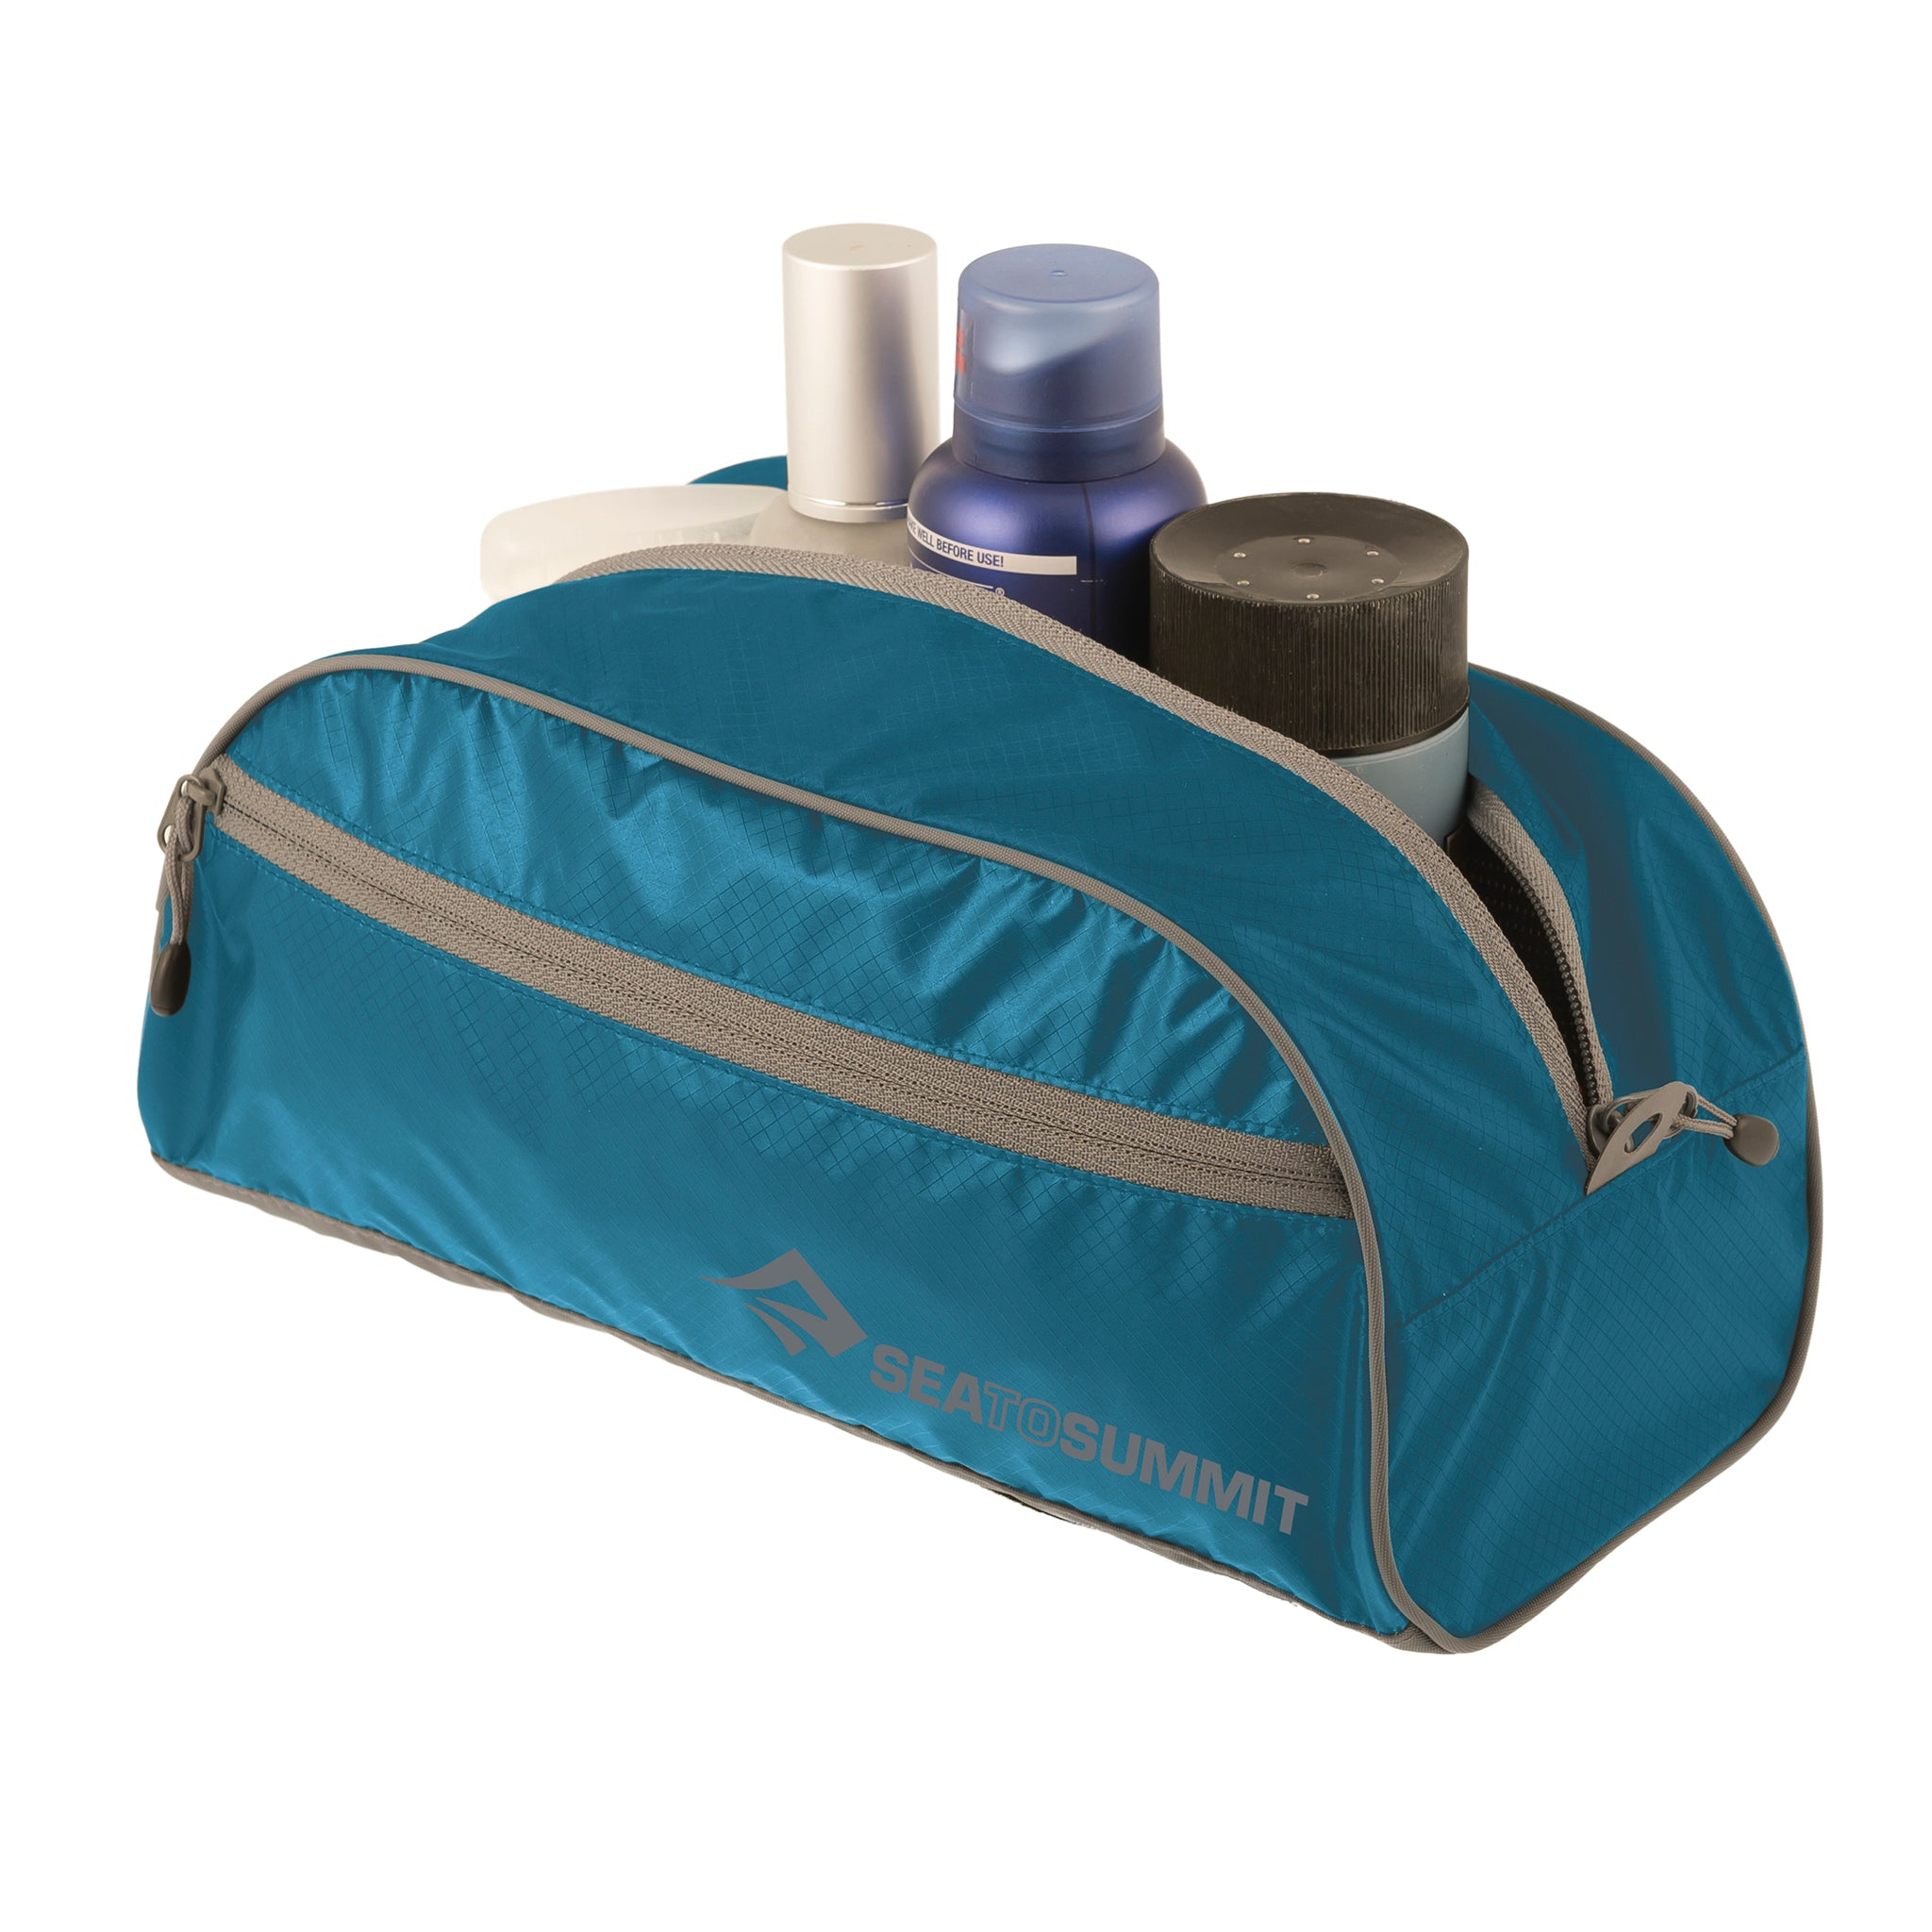 Travelling Light _Toiletry Bag _ waterproof _ large _ pacific blue